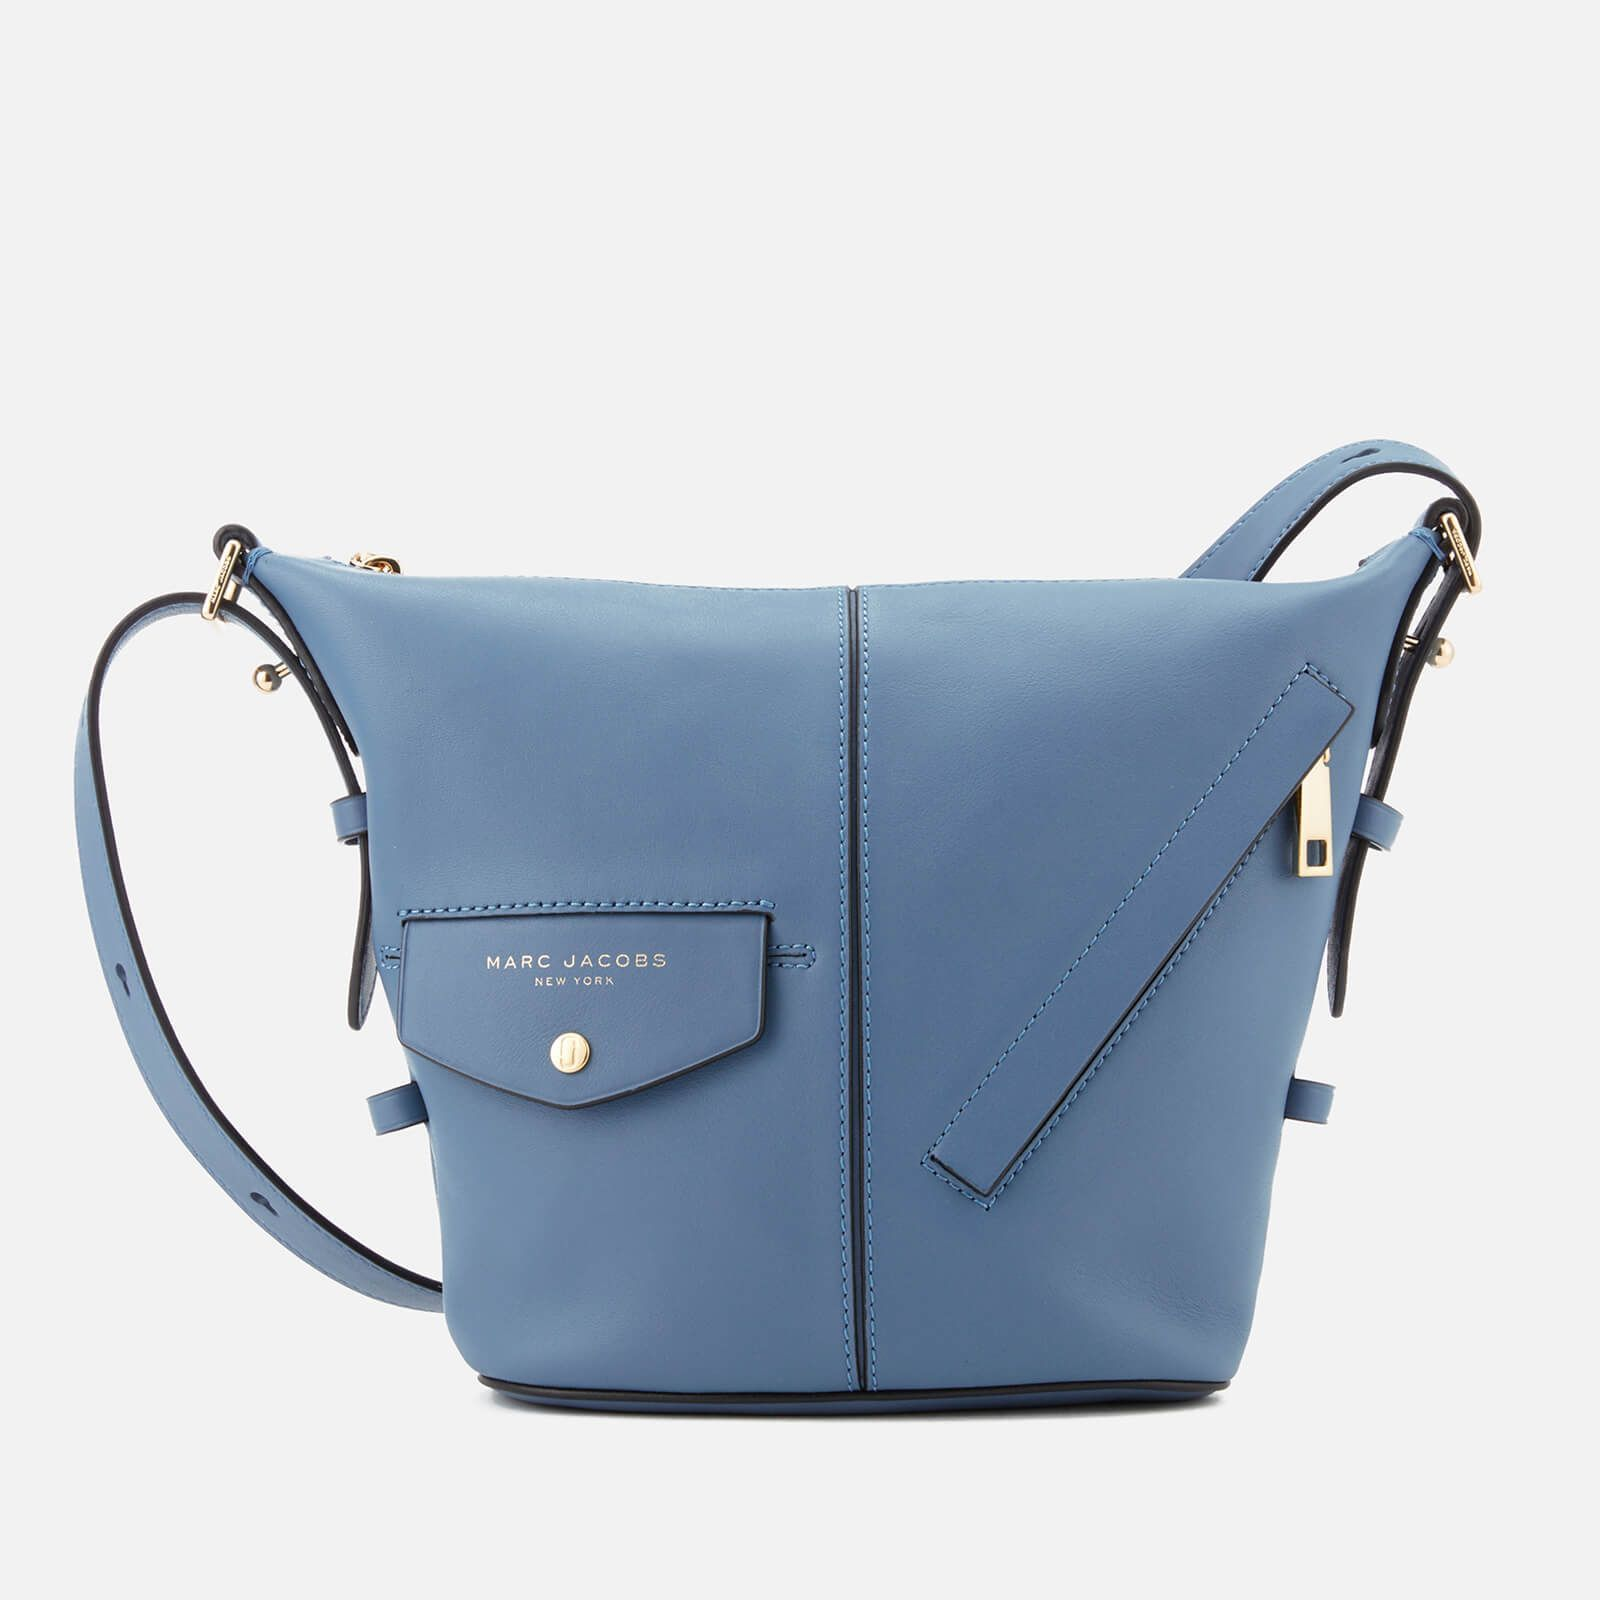 Marc Jacobs Women S The Mini Sling Cross Body Bag Vintage Blue Womens Accessories Free Uk Delivery Over 50 Crossbody Bag Convertible Shoulder Bags Bags